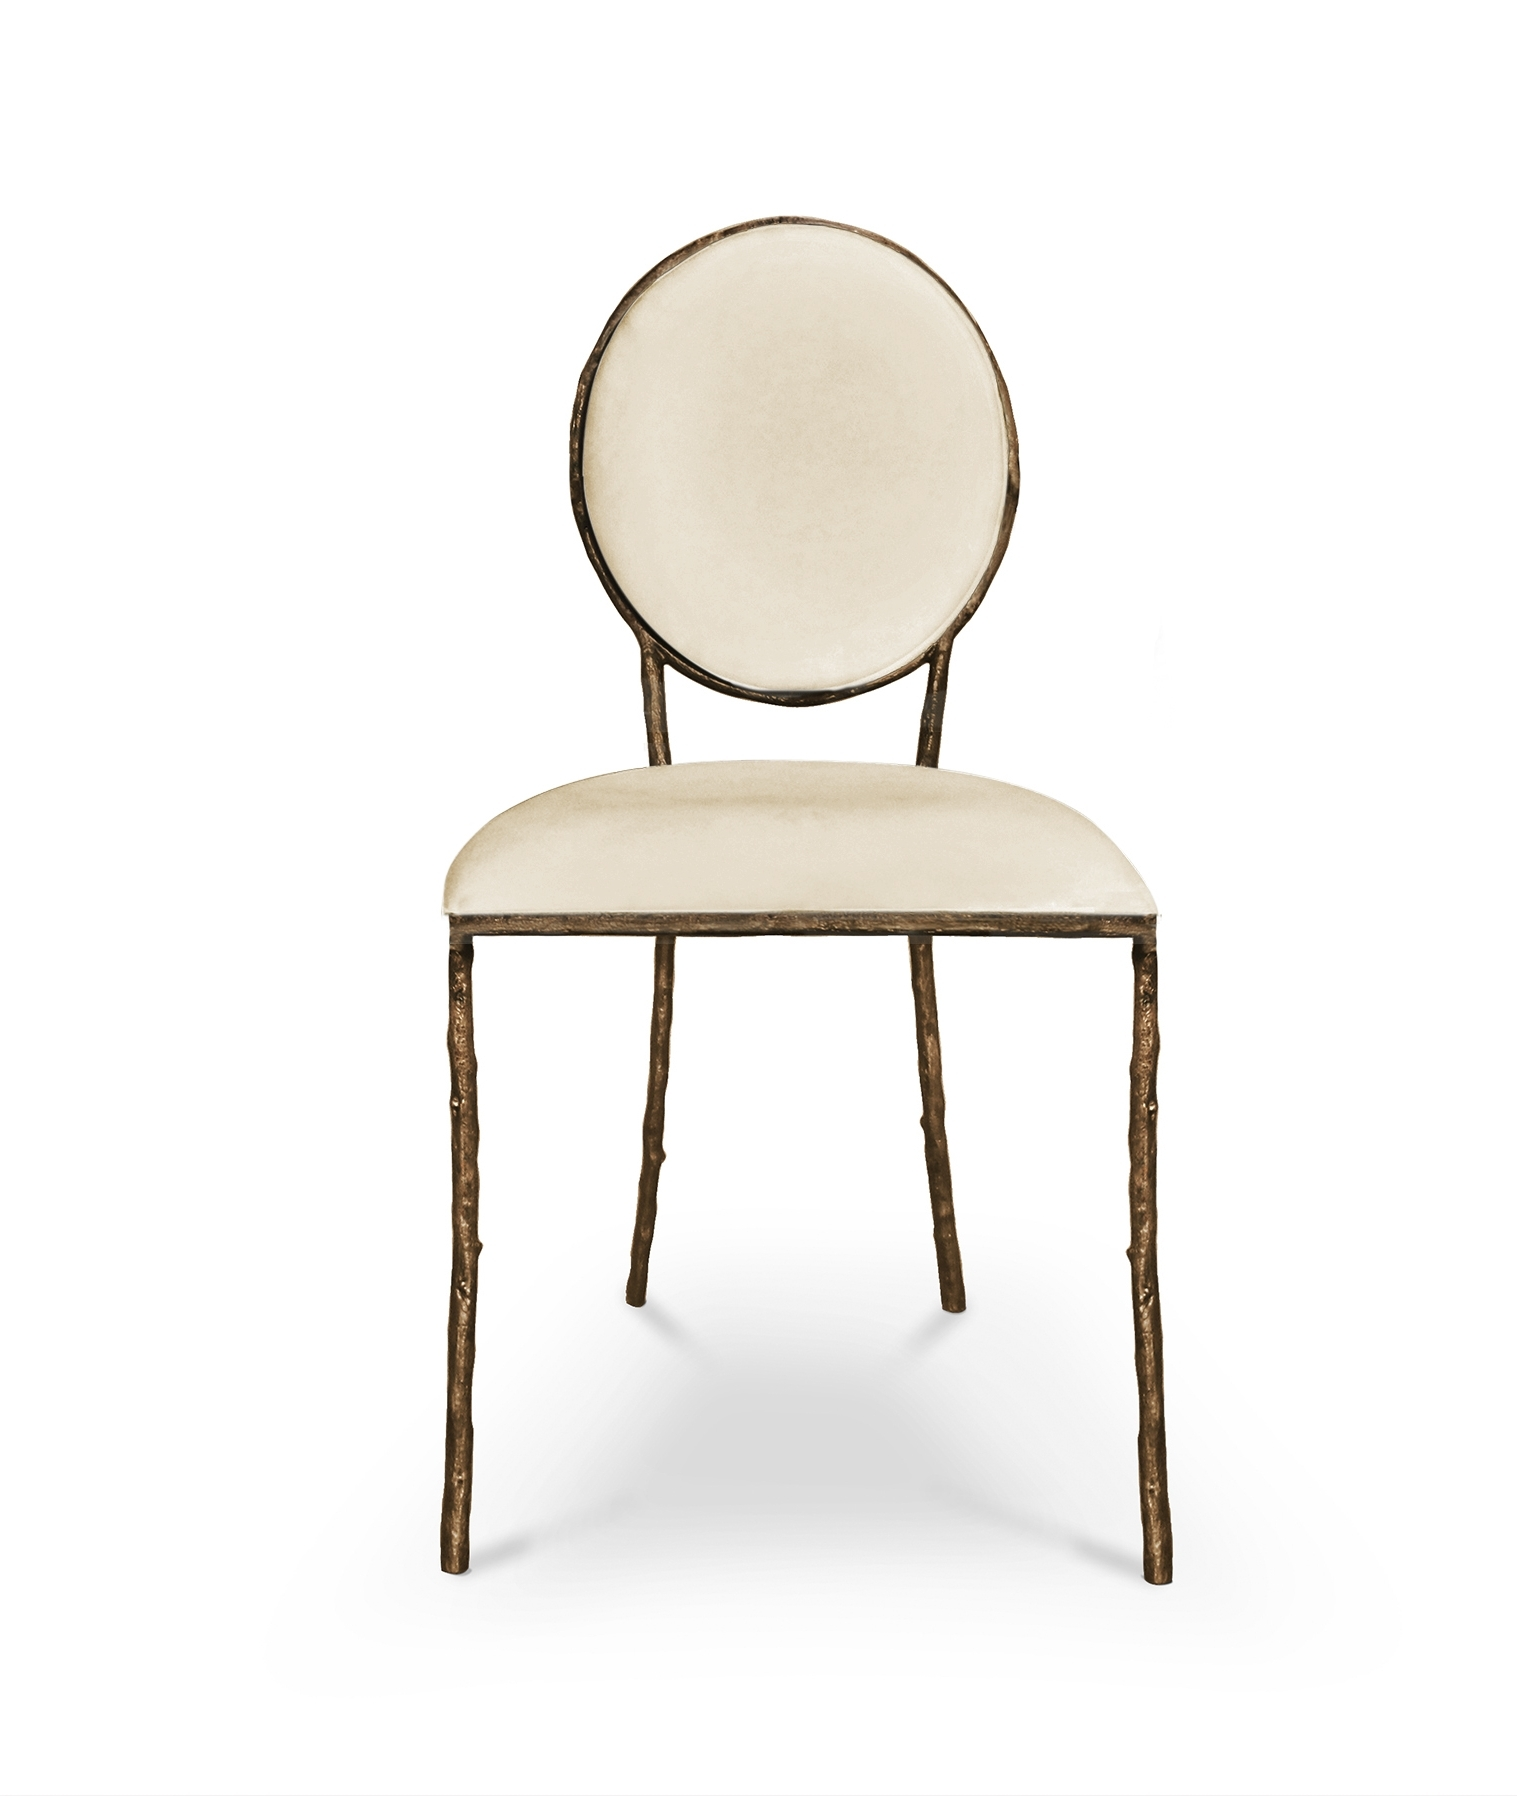 Most Recent Great Selection Of Dining Chairs To Stylish Your Dining Room Throughout Stylish Dining Chairs (View 4 of 25)